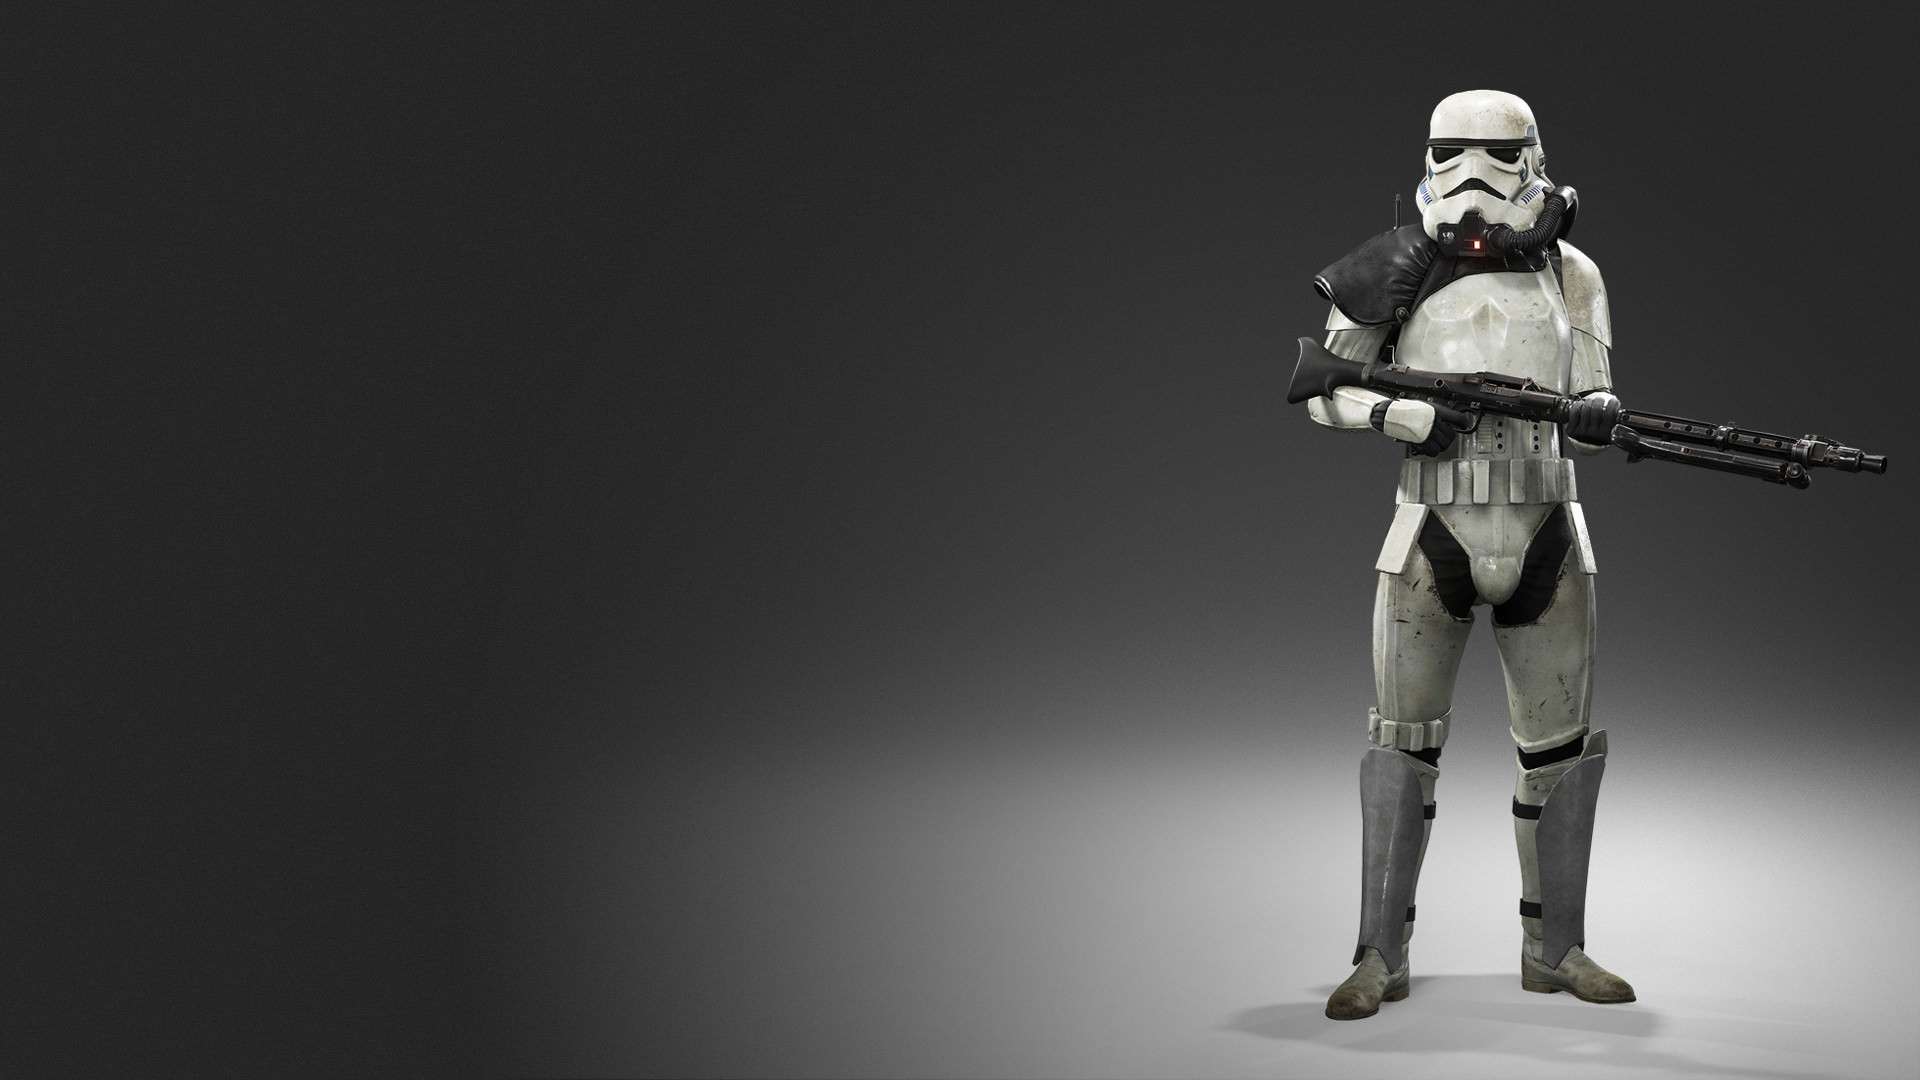 Shadow Trooper Wallpapers Top Free Shadow Trooper Backgrounds Wallpaperaccess